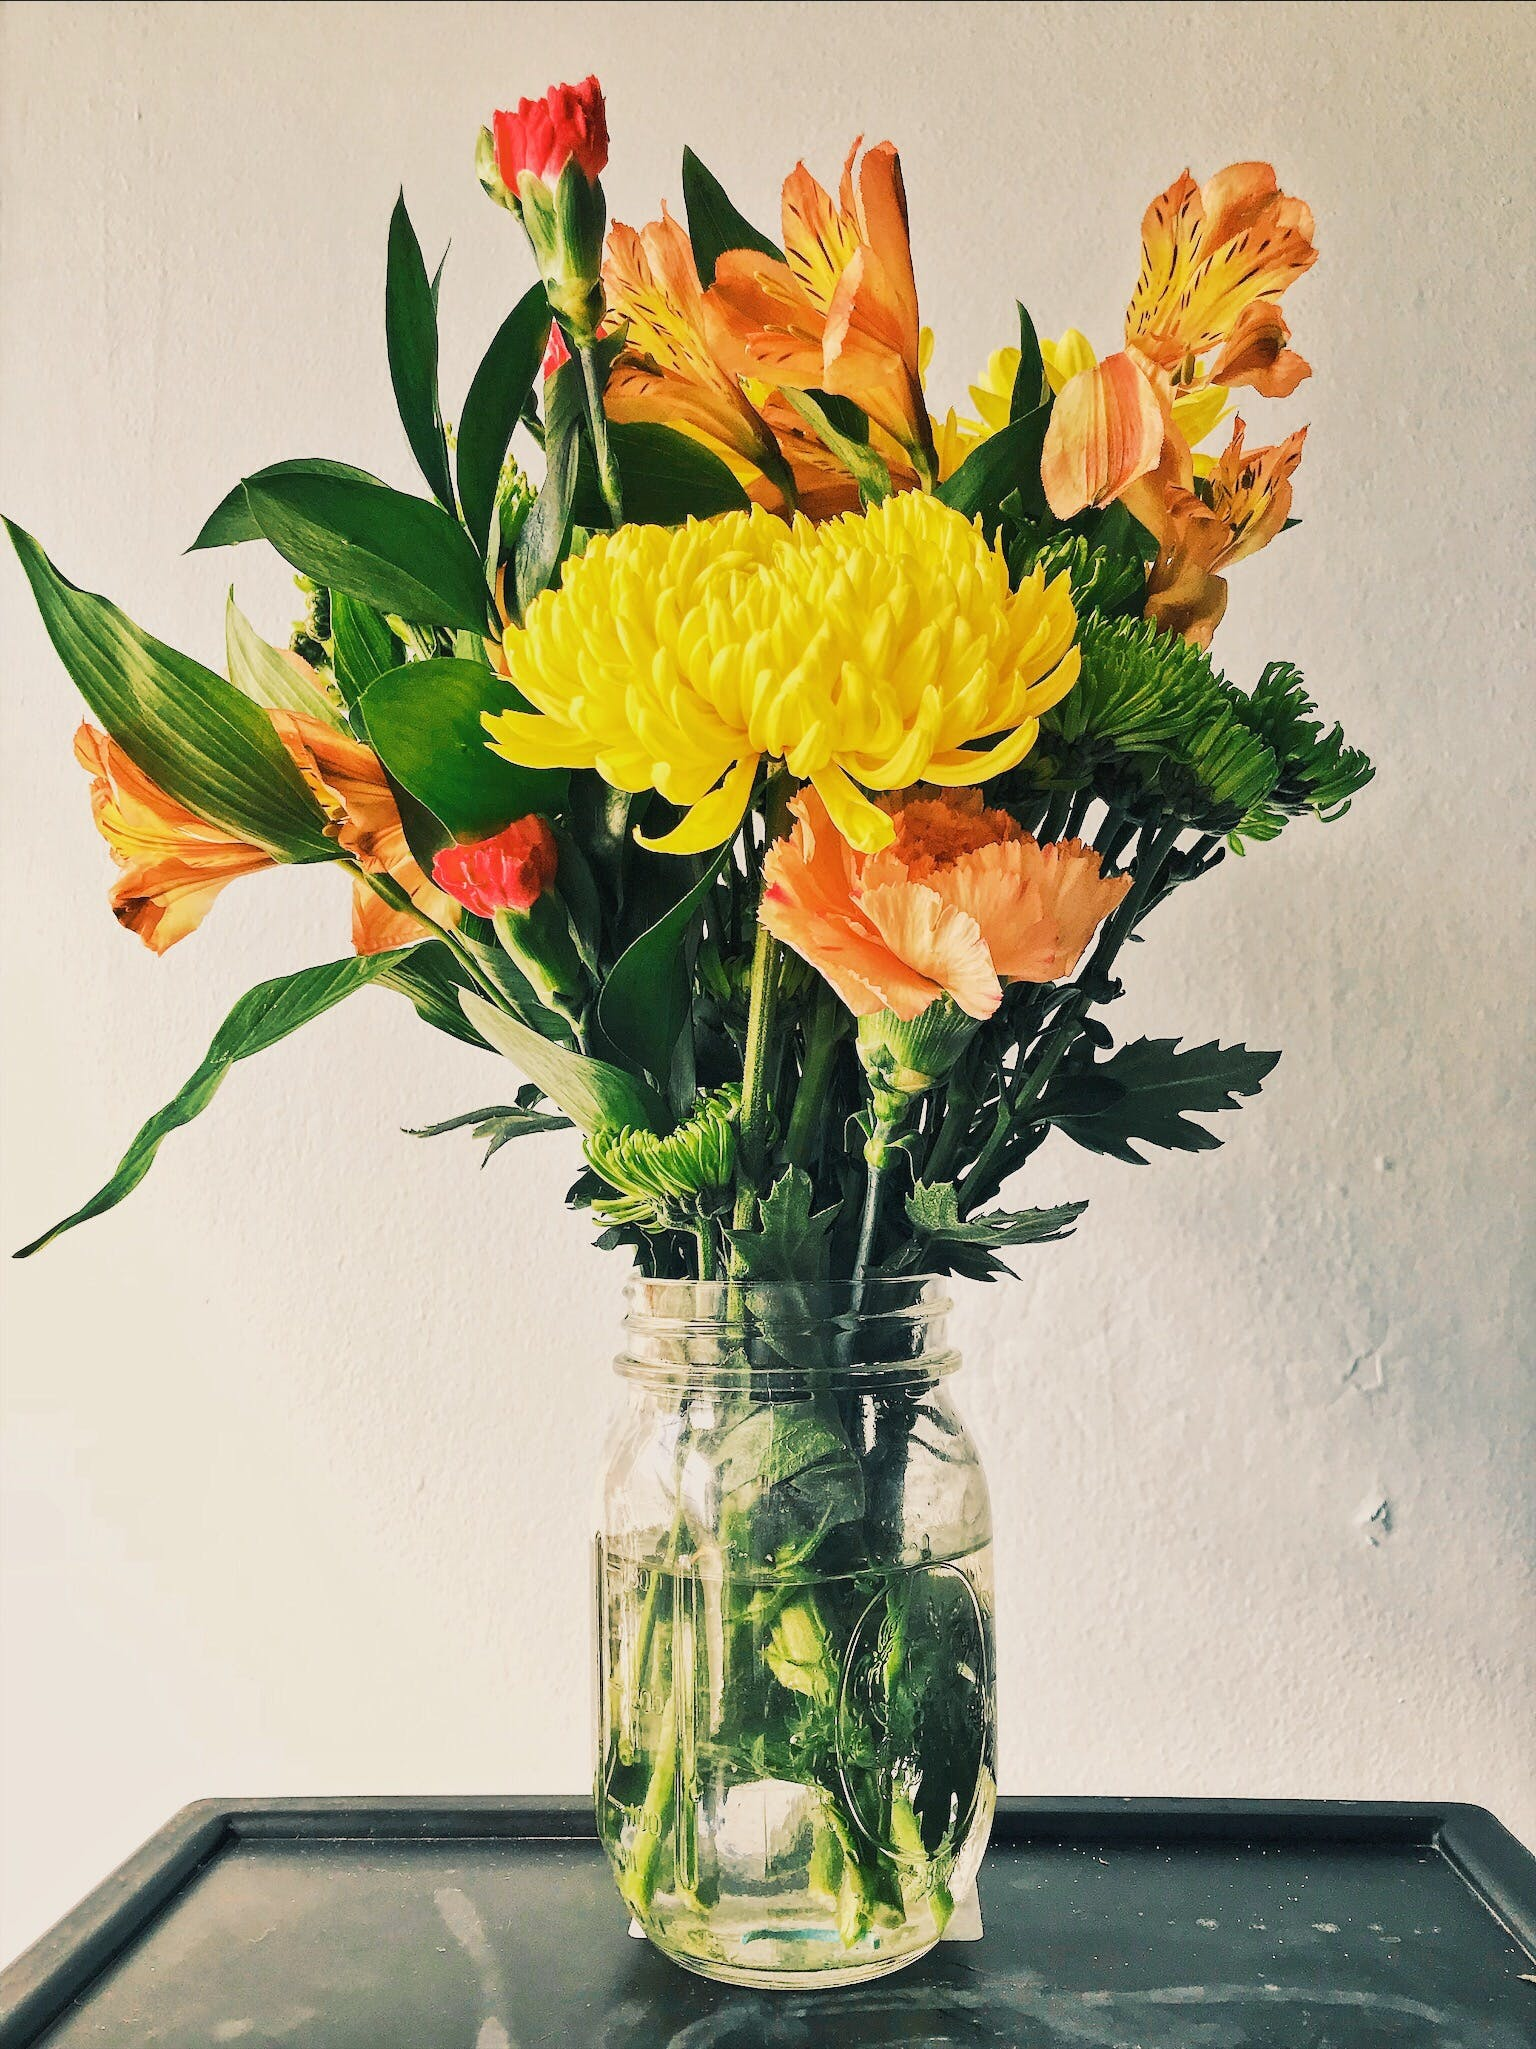 Yellow Mums, Orange Peruvian Lilies, and Carnation Flower Arrangement